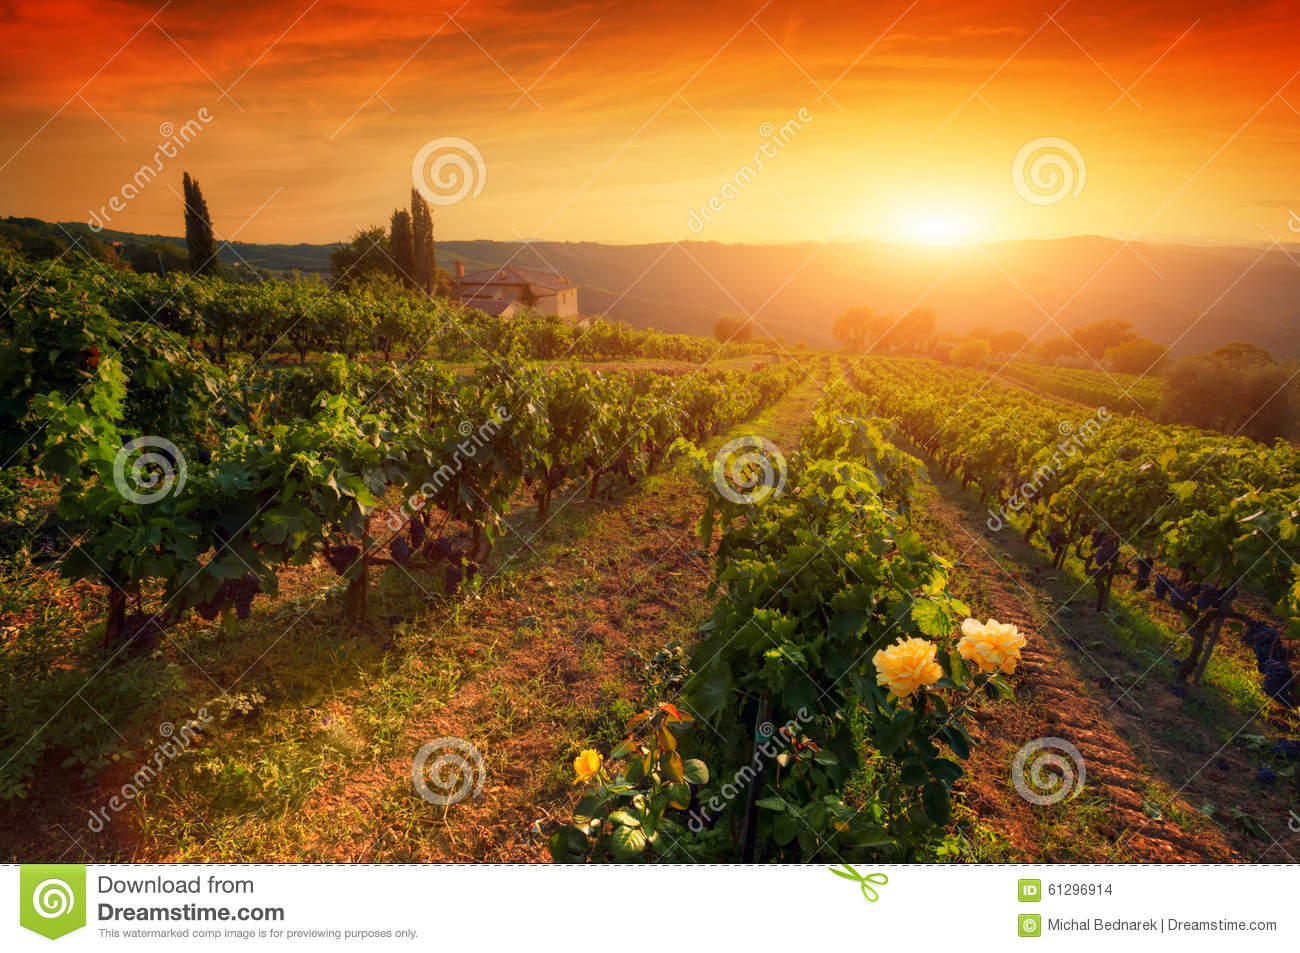 Download Ripe Wine Grapes On Vines In Tuscany, Italy. Wine Farm, Sunset Warm Light Stock Photo - Image of light, industry: 61296914